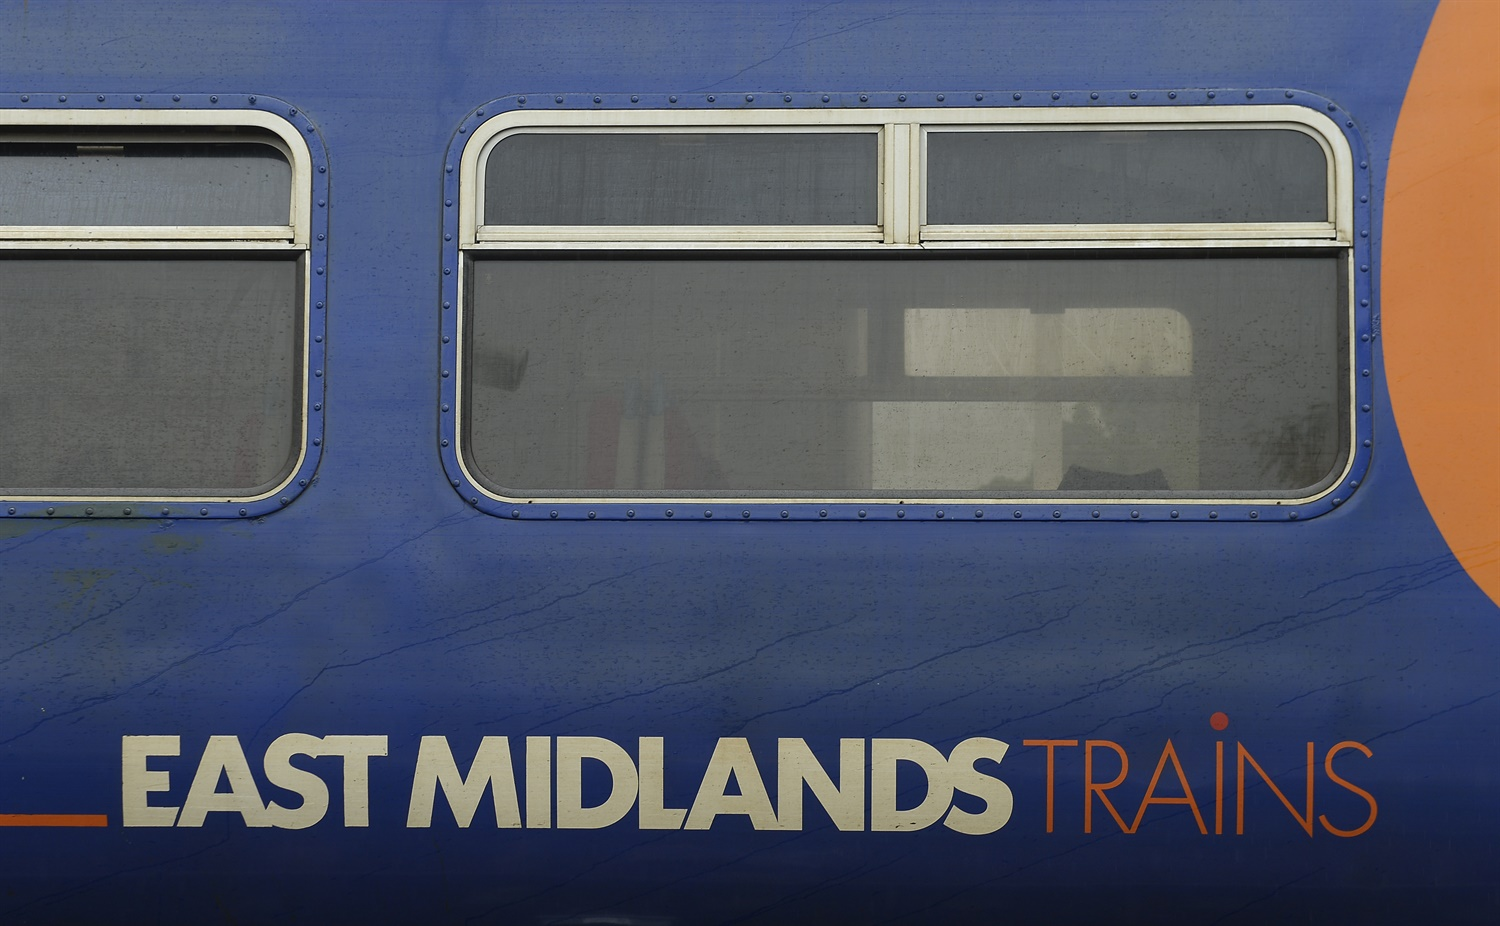 Stagecoach secures East Midlands Trains franchise extension with DfT until August